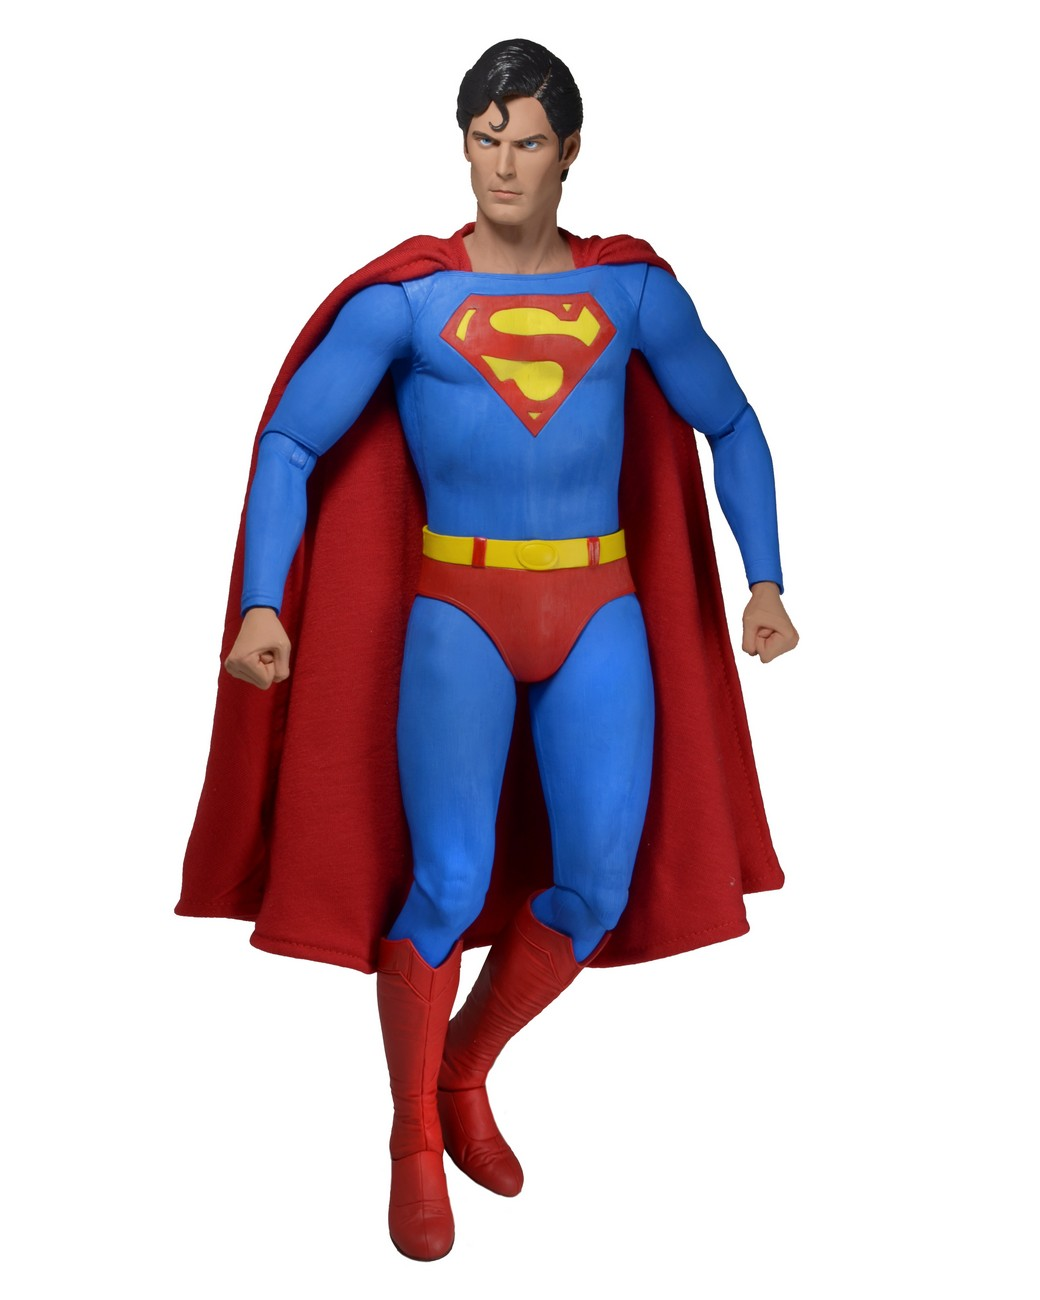 http://news.toyark.com/wp-content/uploads/sites/4/2015/06/Christopher-Reeve-18-Inch-Superman-by-NECA-002.jpg